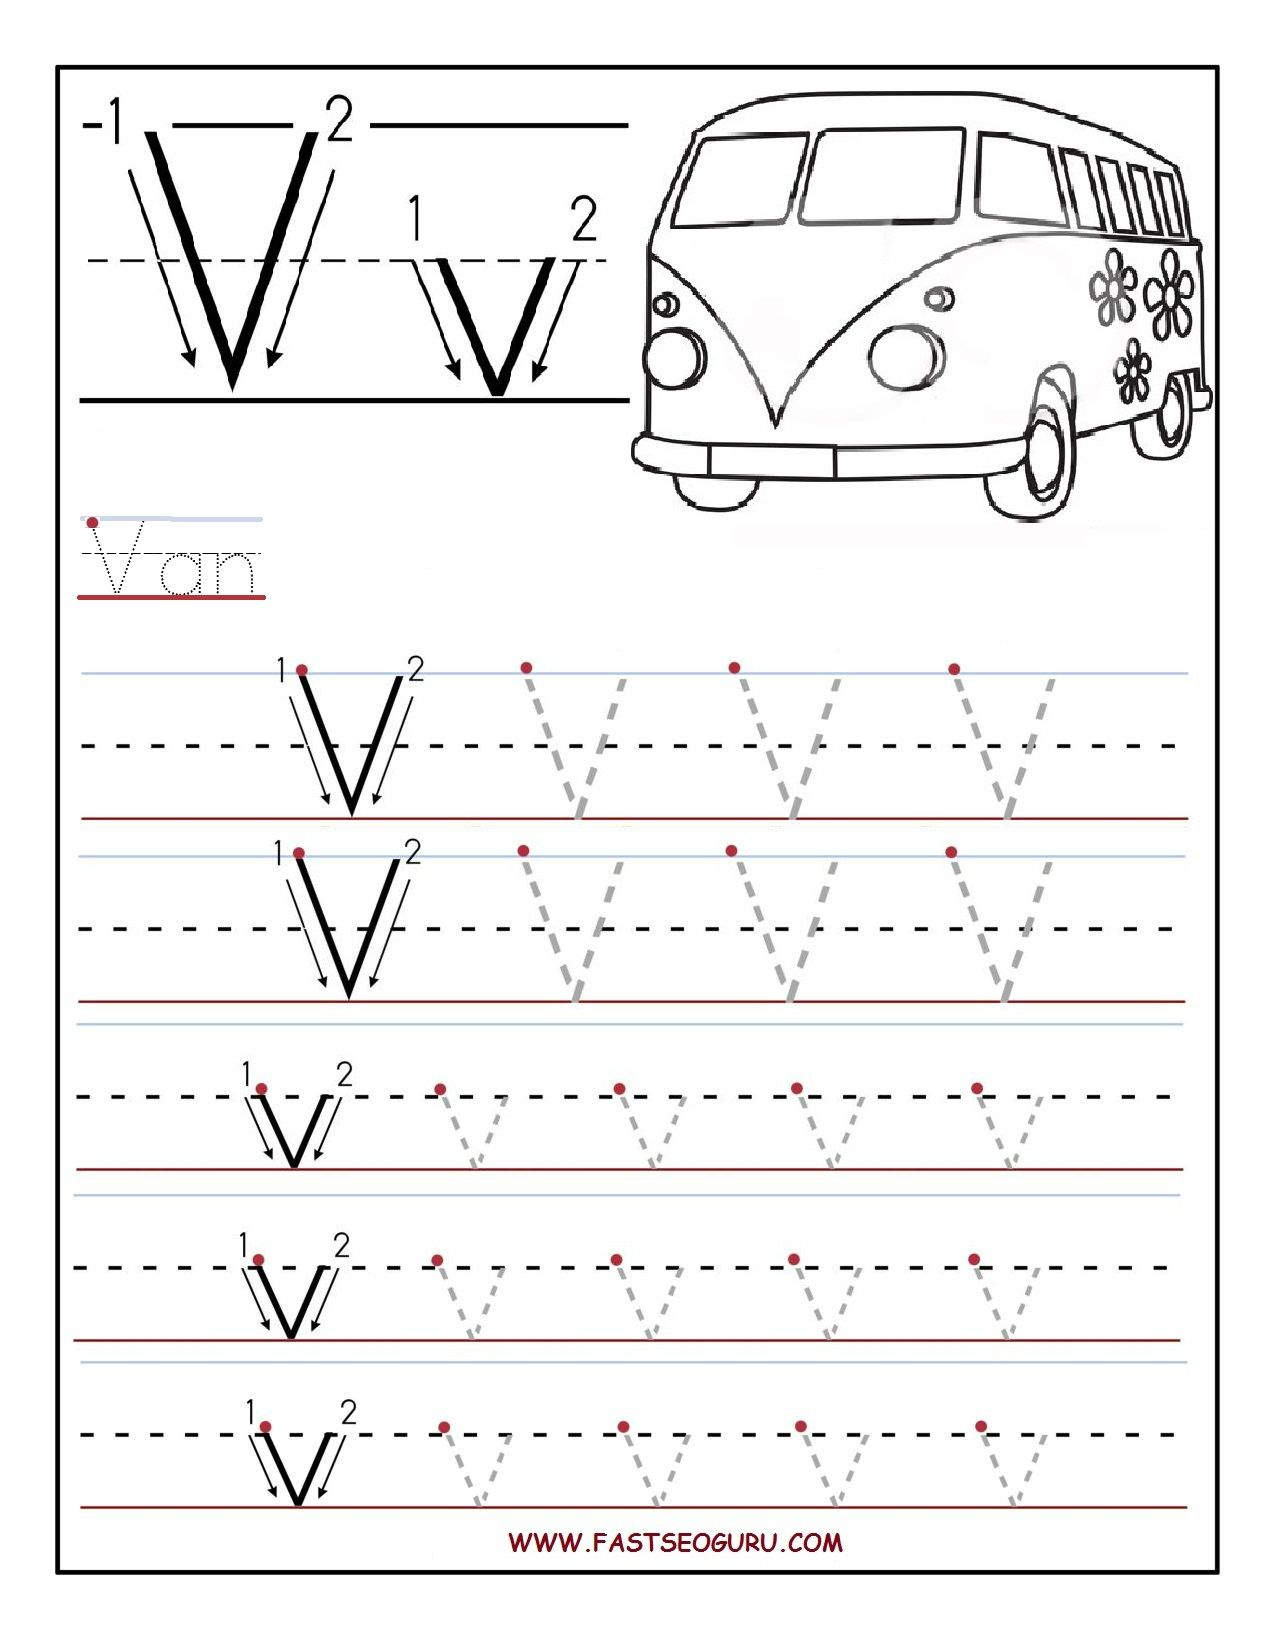 Printable Letter V Tracing Worksheets For Preschool